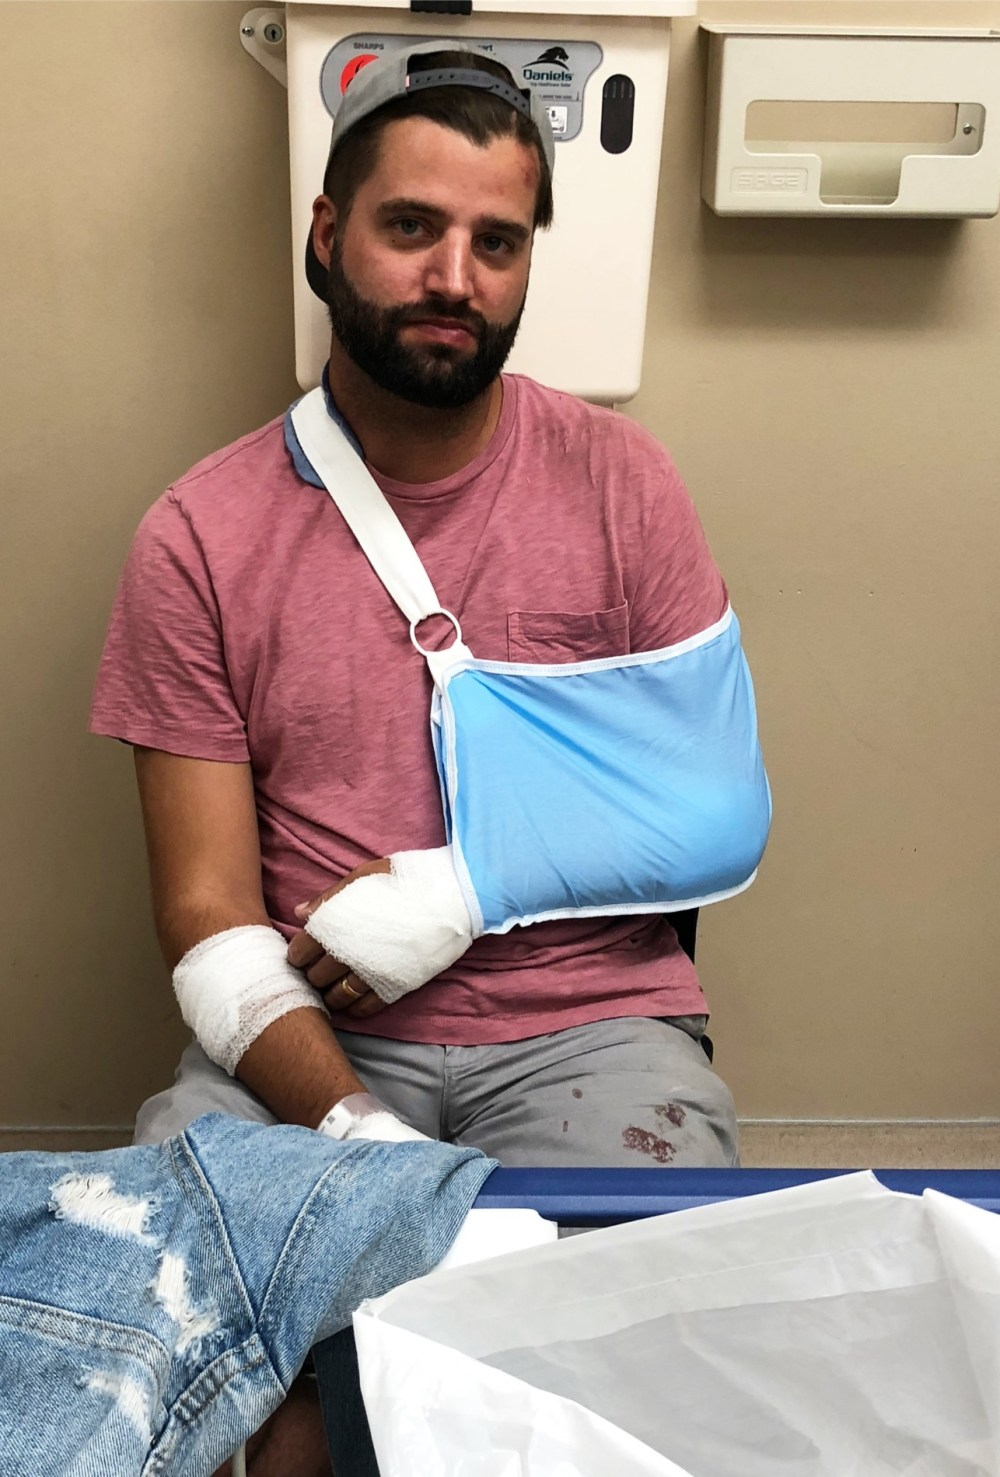 A Sunday Visit To The ER and Dealing With Road Rash